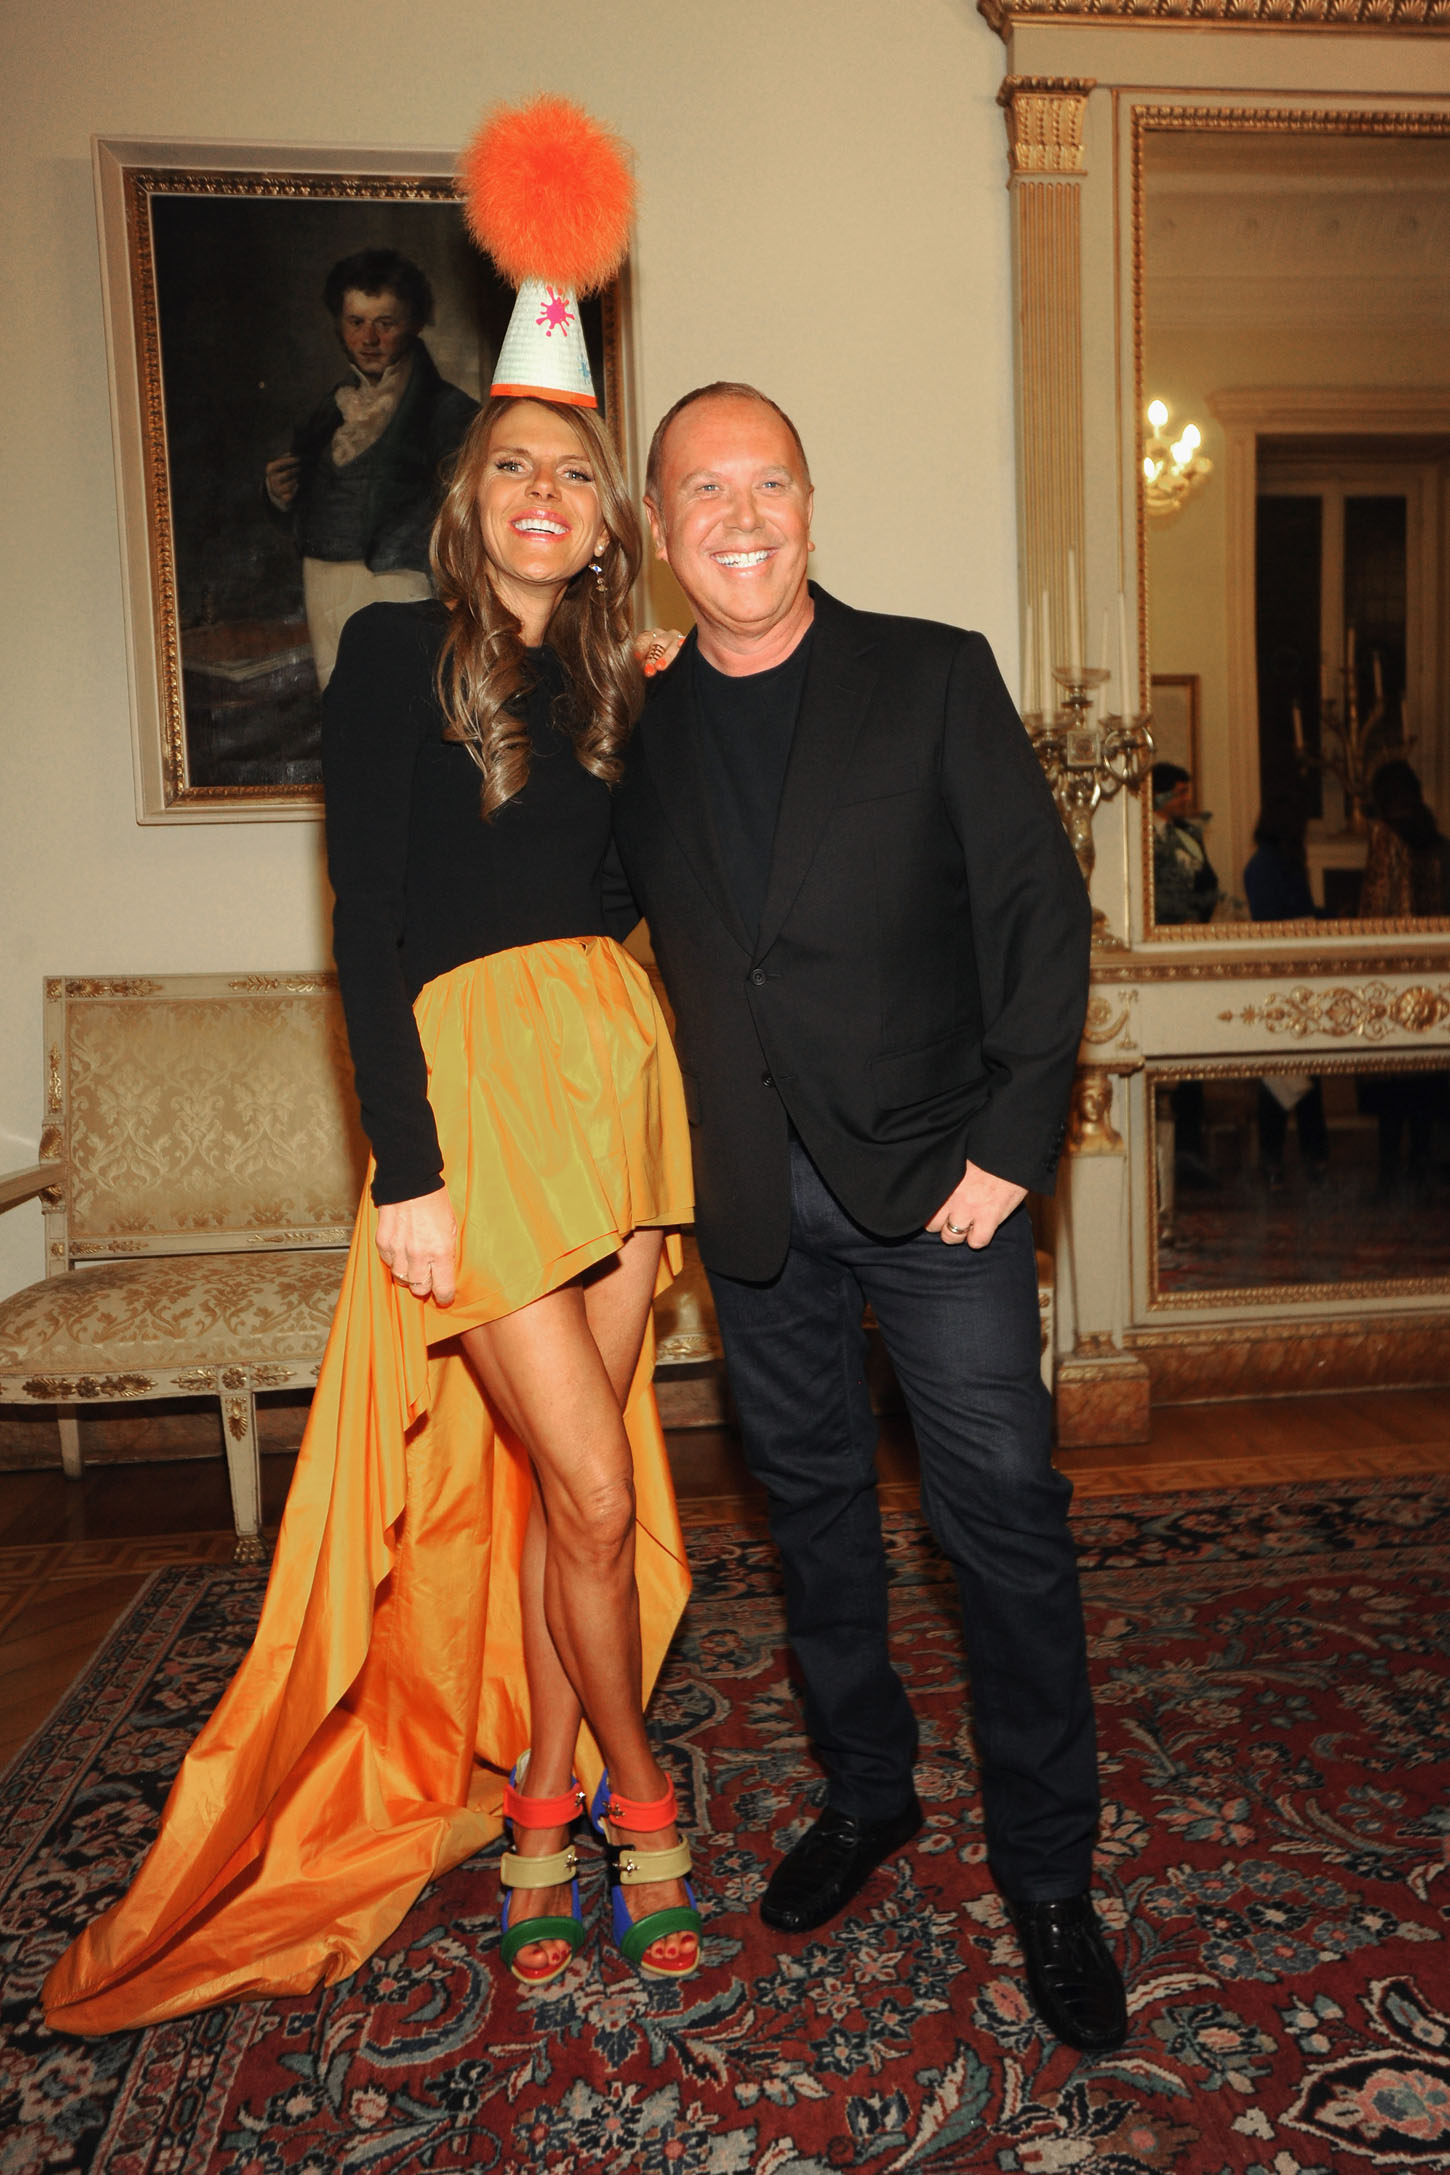 MILAN, ITALY - DECEMBER 04:  Anna Dello Russo and Designer Michael Kors attend Michael Kors to celebrate Milano cocktail arrivals on December 4, 2013 in Milan, Italy.  (Photo by Pier Marco Tacca/Getty Images for Michael Kors)